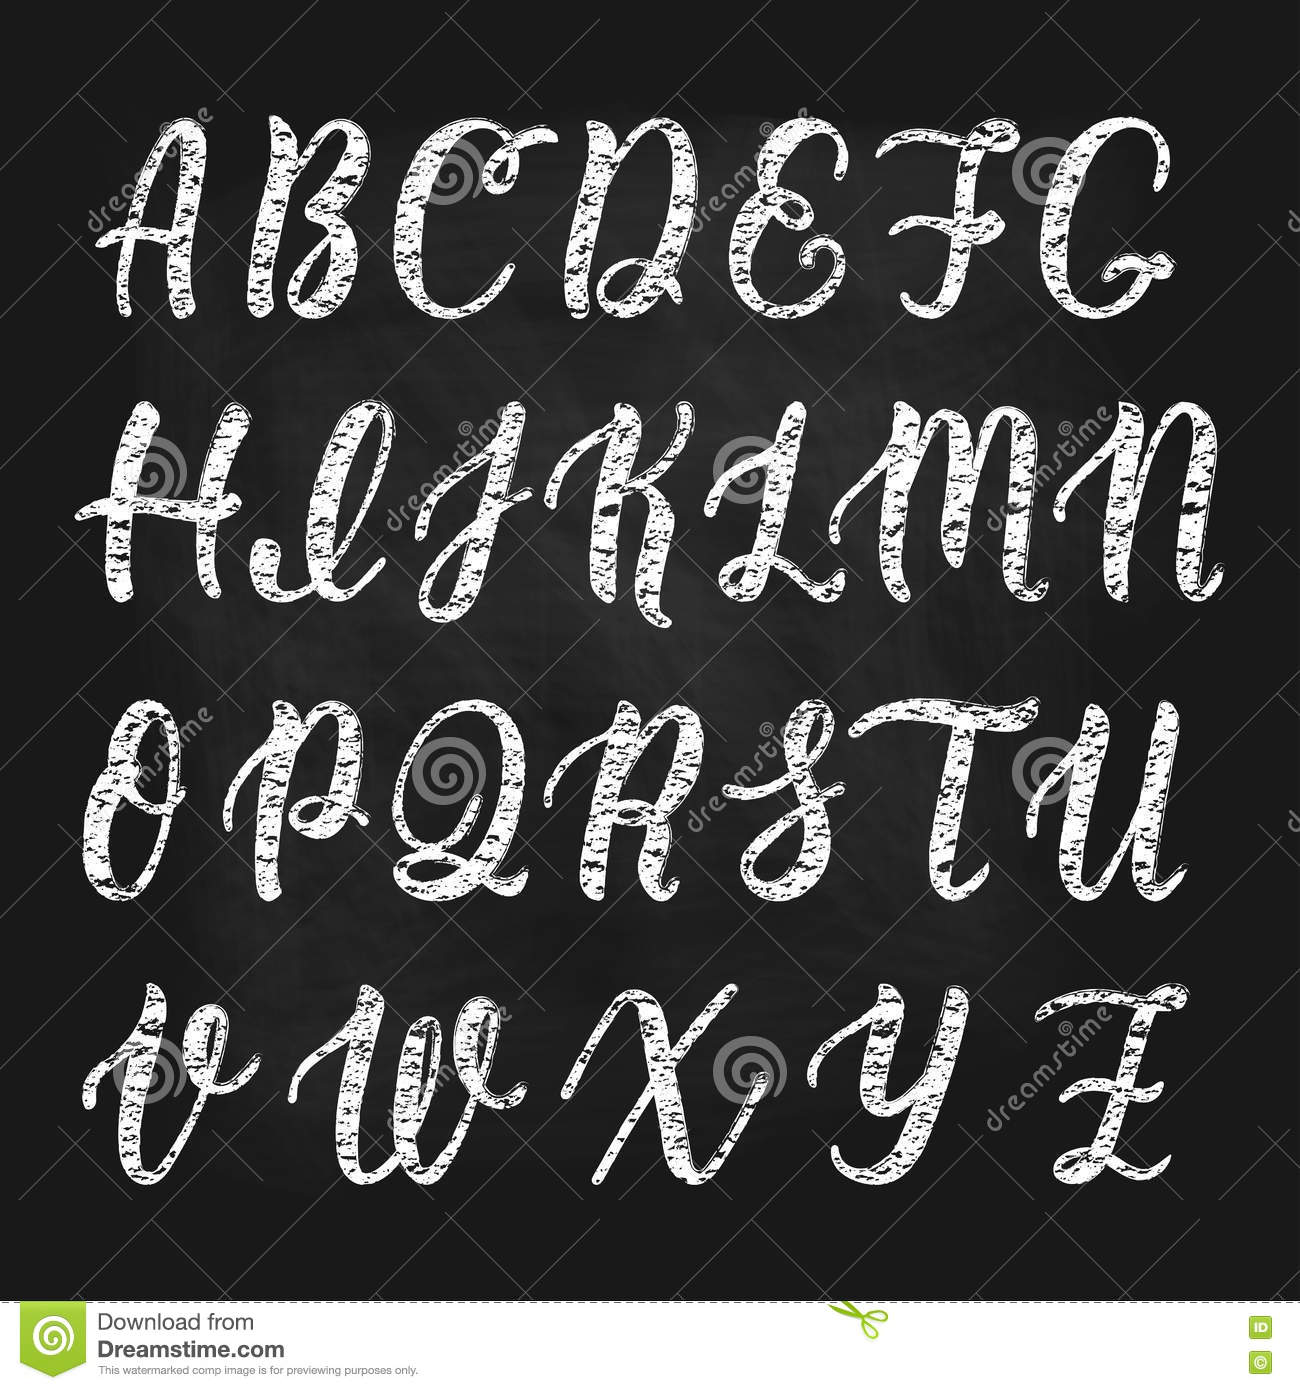 Chalk Hand Drawn Latin Calligraphy Brush Script Of Capital Letters Calligraphic Alphabet Vector Royalty